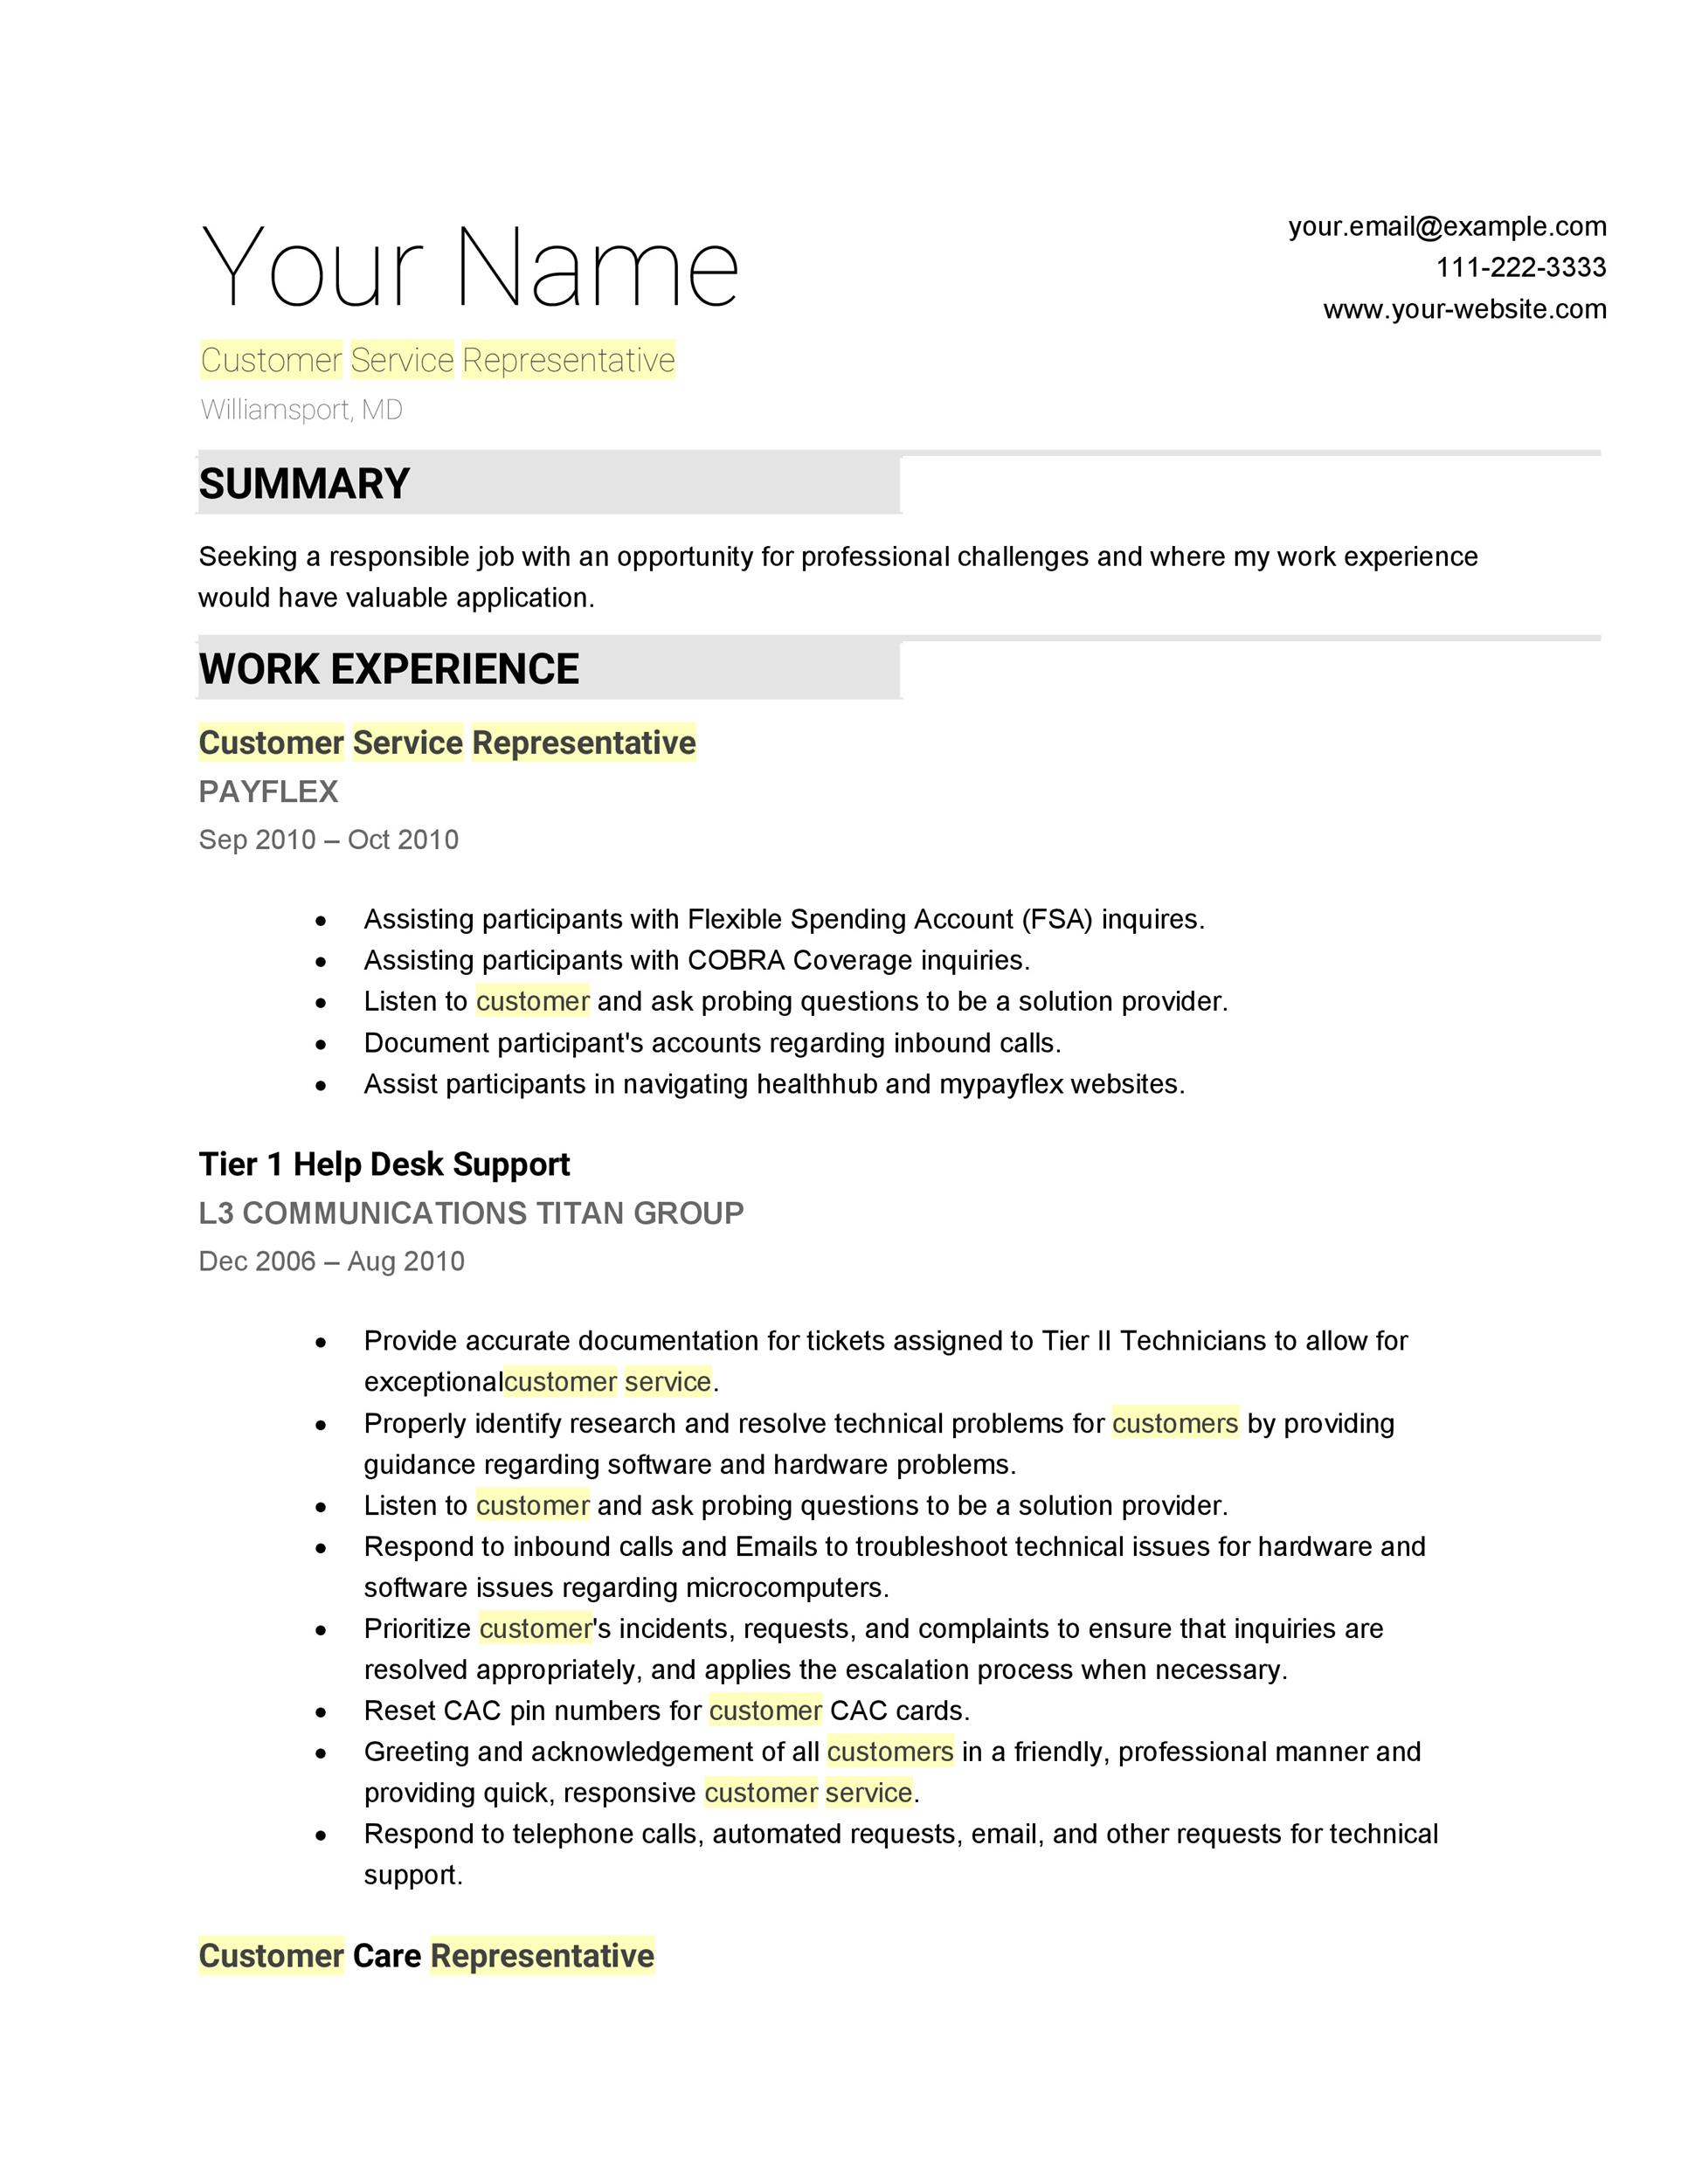 customer service resume templates - Work Resume Template